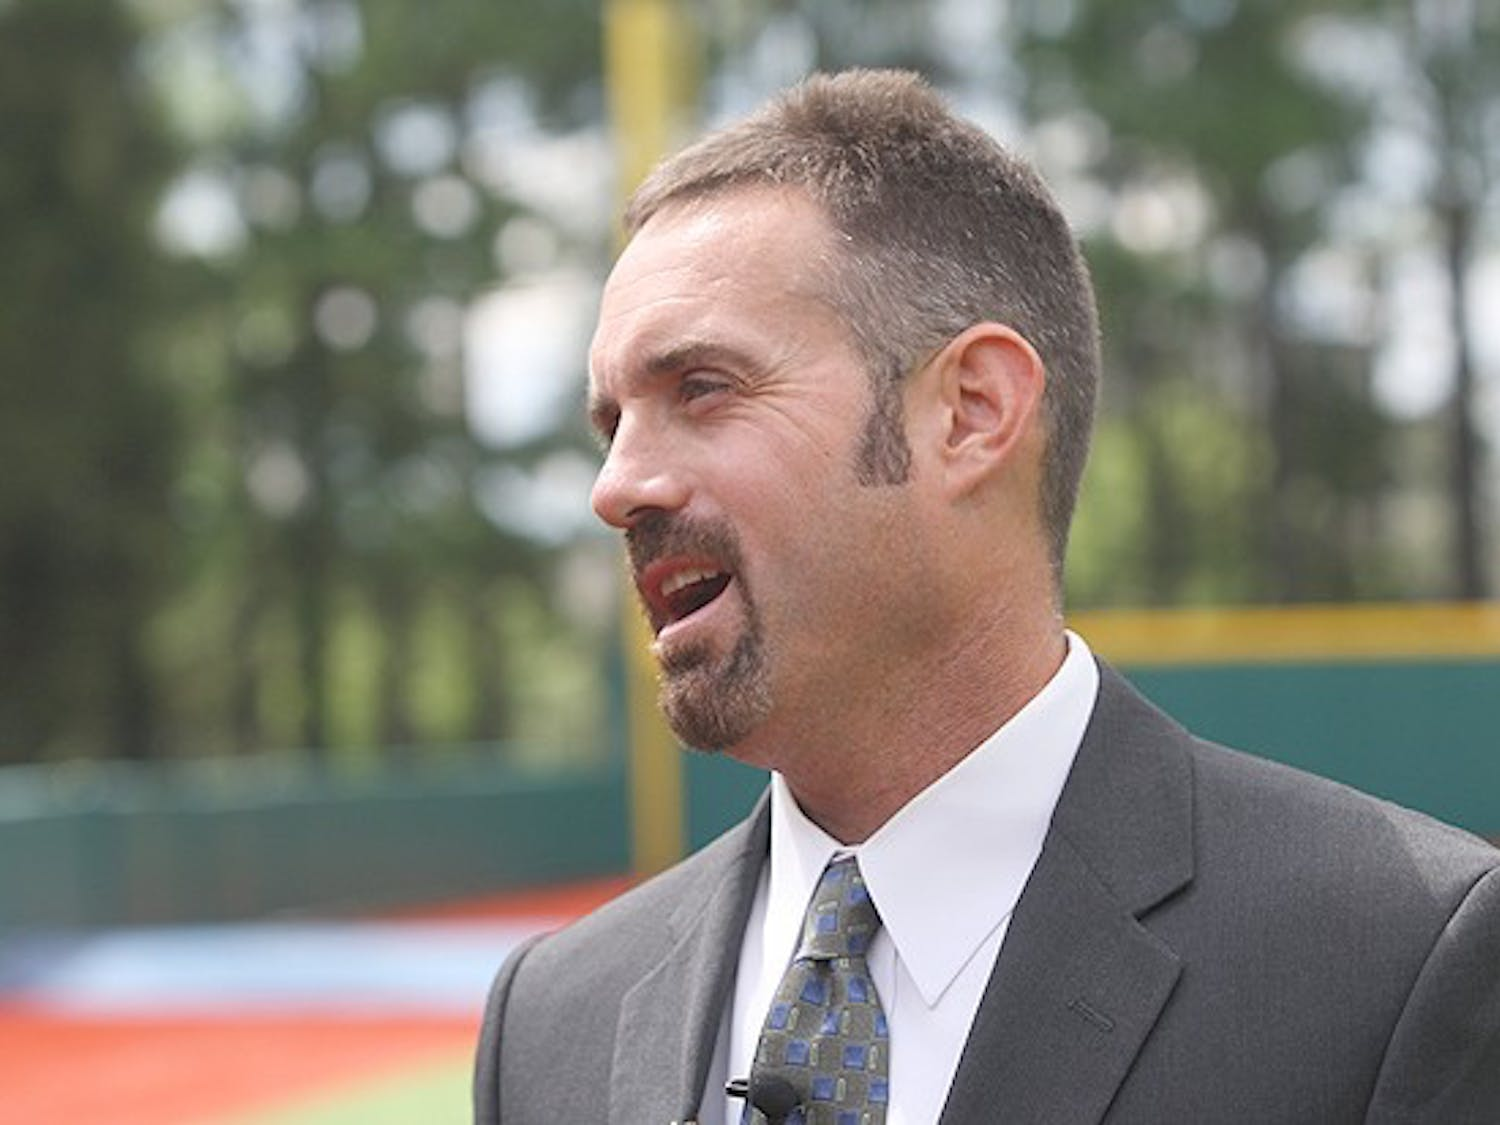 Chris Pollard was introduced as Duke's new head baseball coach Thursday afternoon after eight years at Appalachian State.